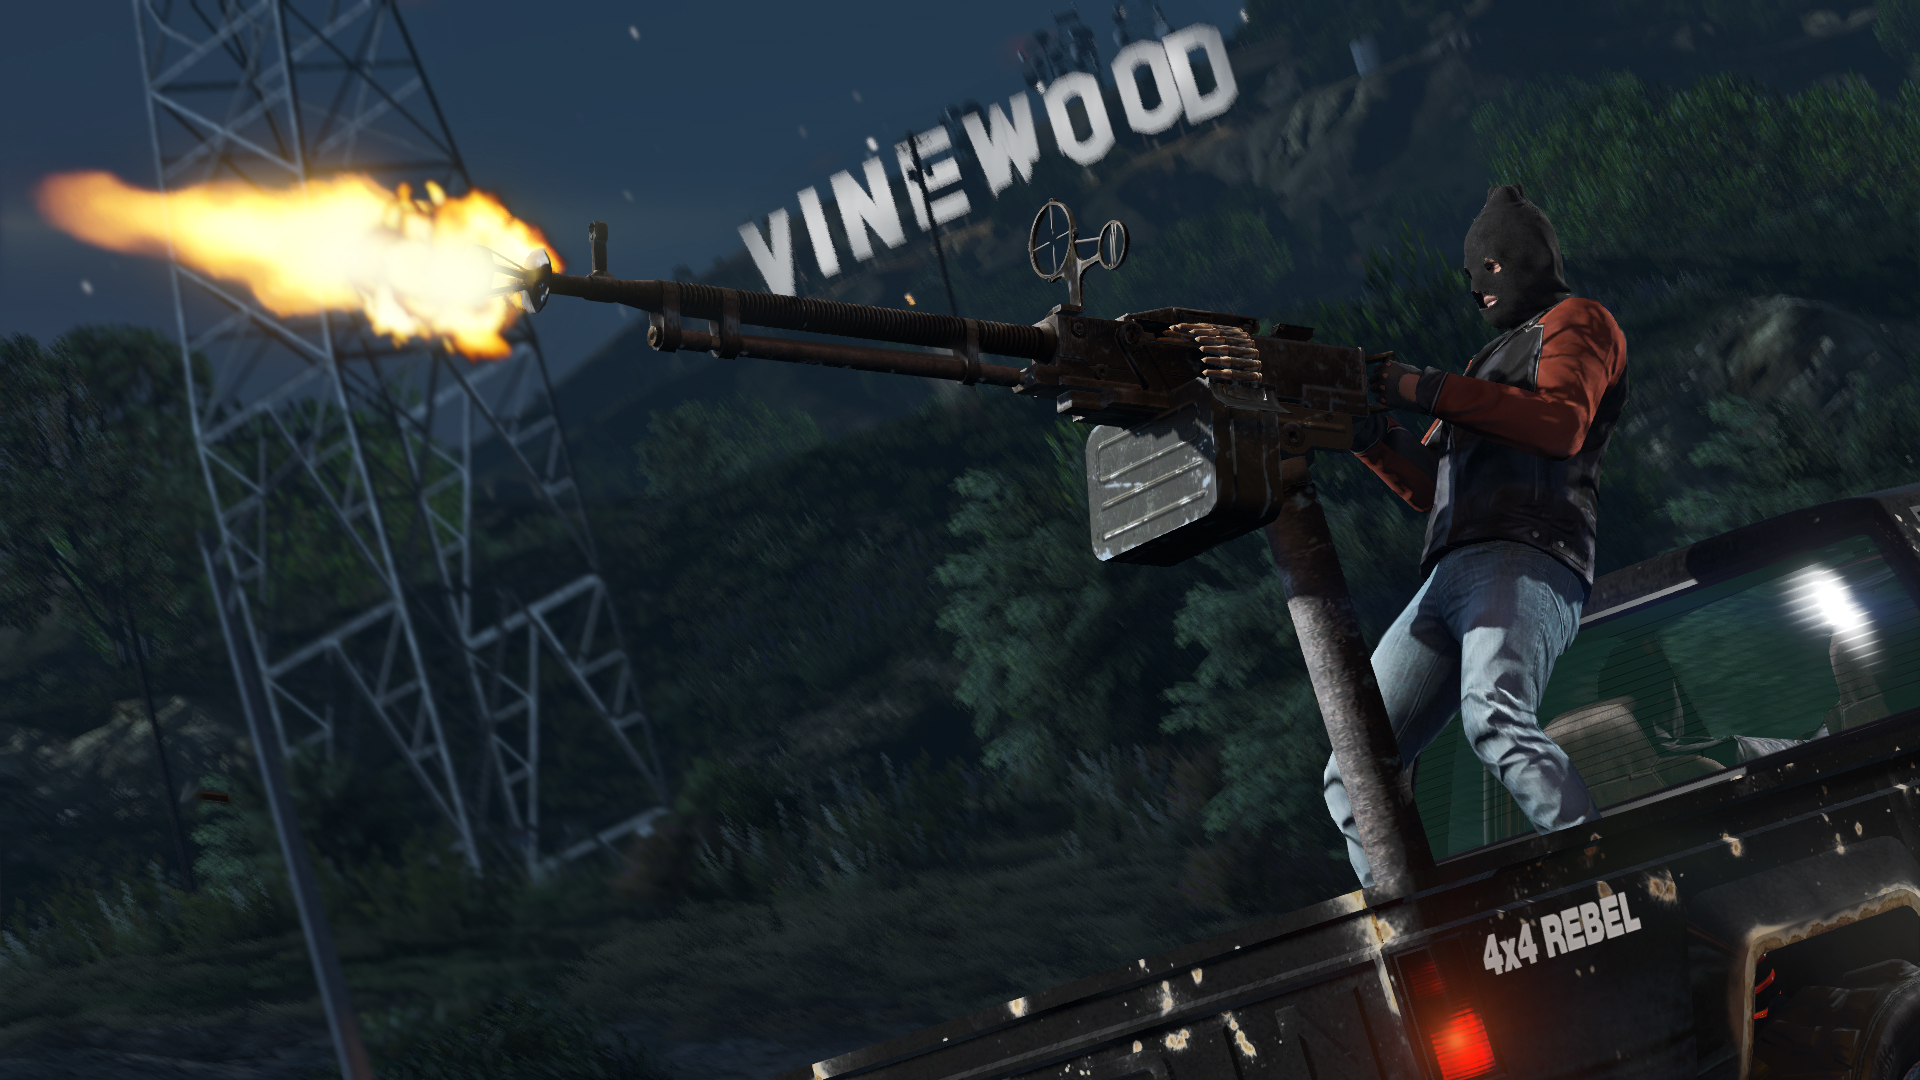 GTA 5 PC delayed again to April 14, online heists coming March 10